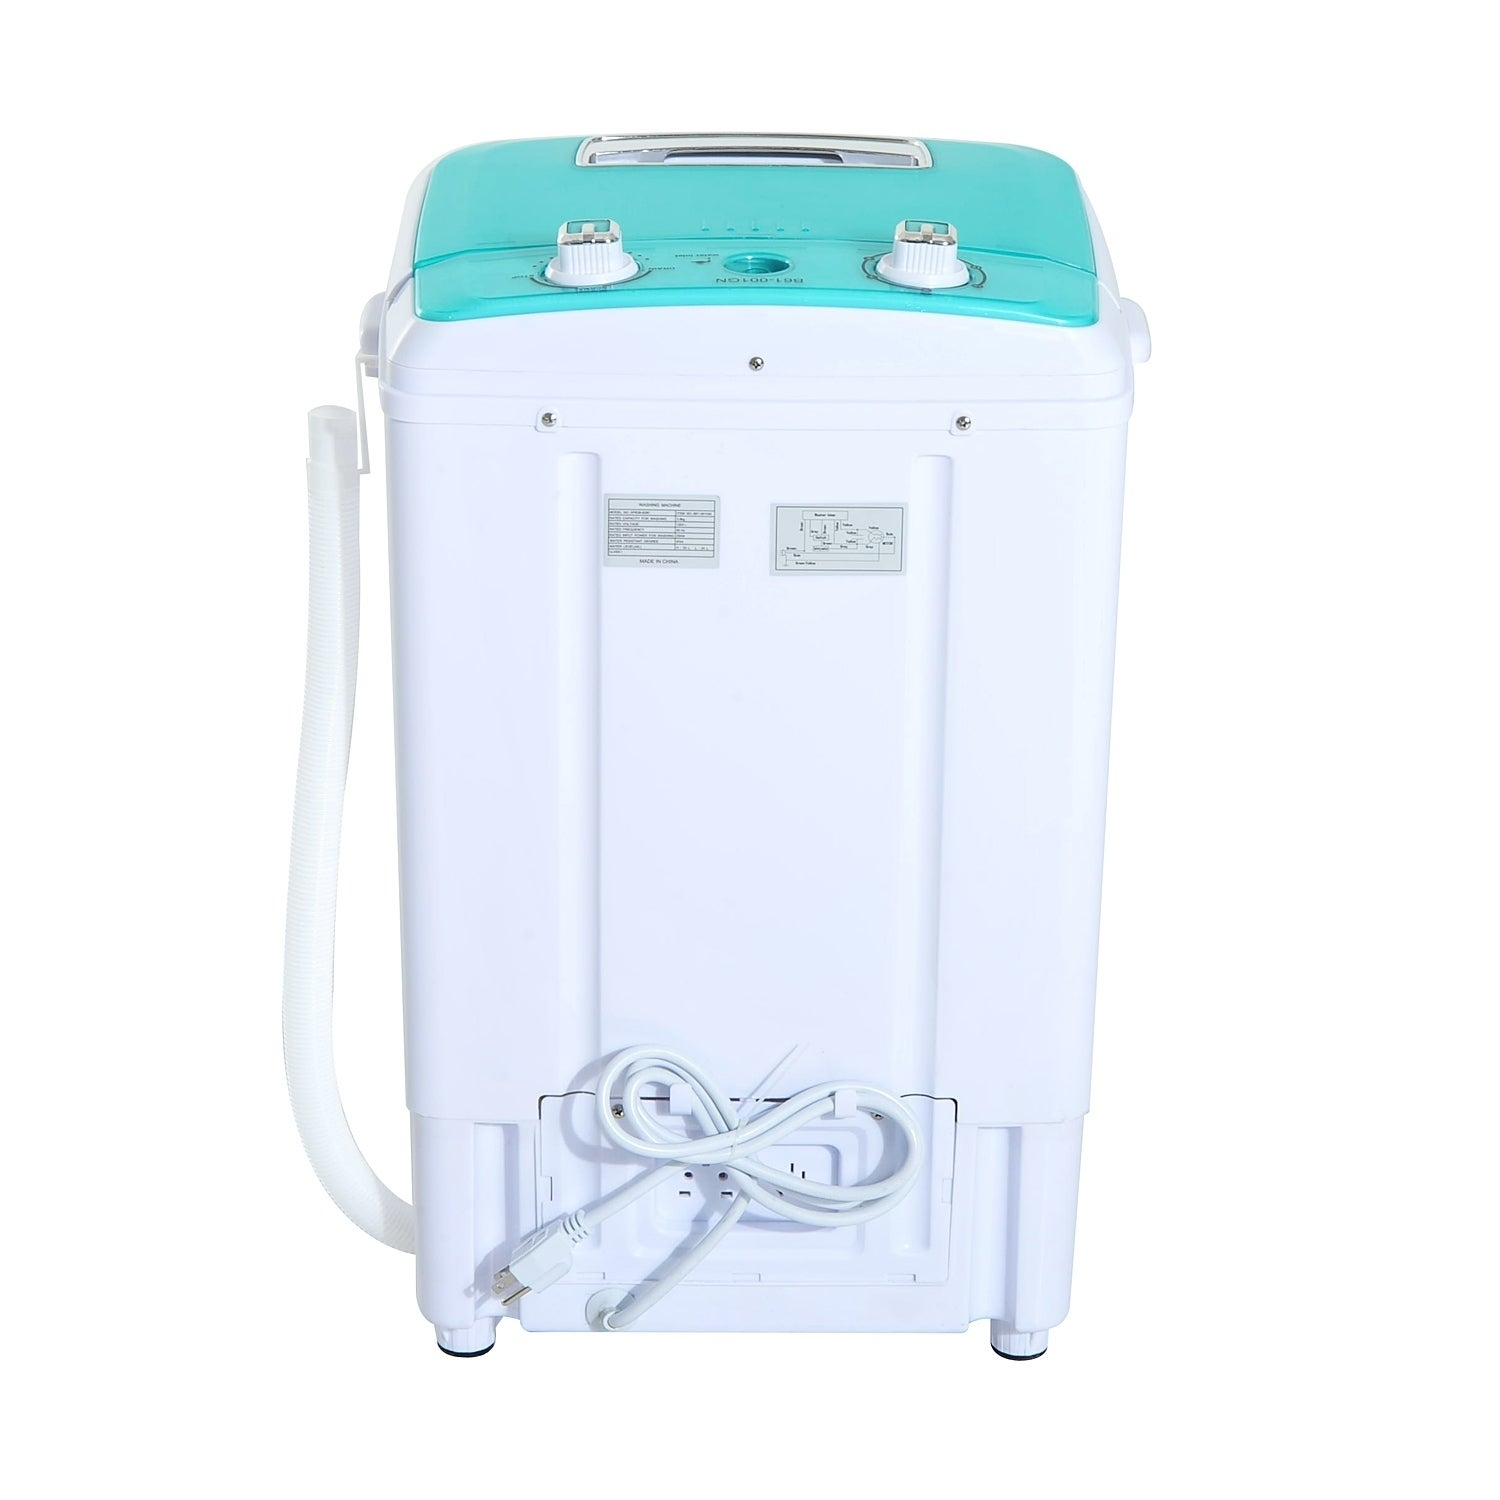 HomCom Top Load Portable Electric Washing Machine with Sp...